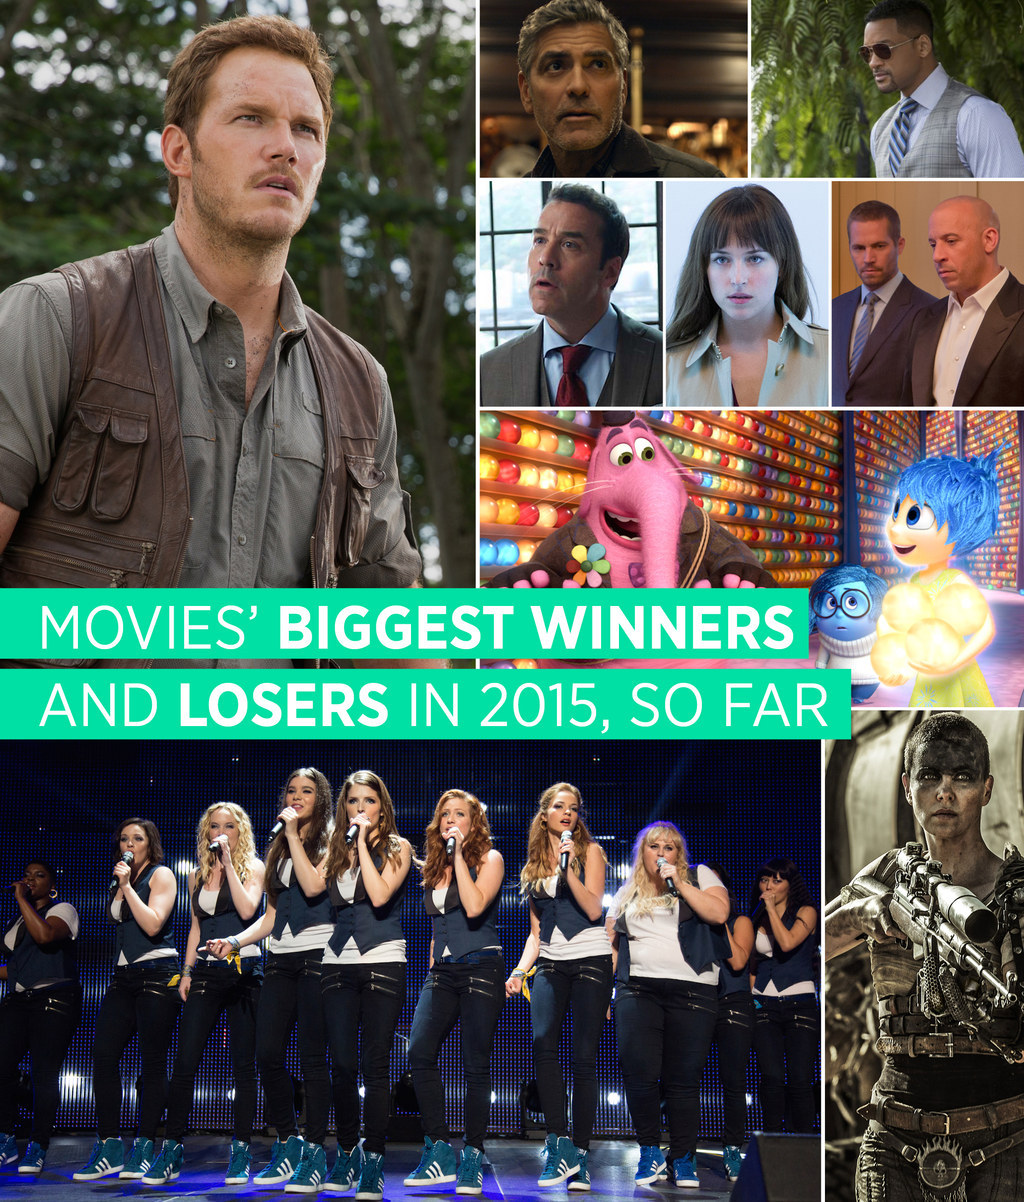 The Biggest Winners And Losers In Movies In 2015, So Far